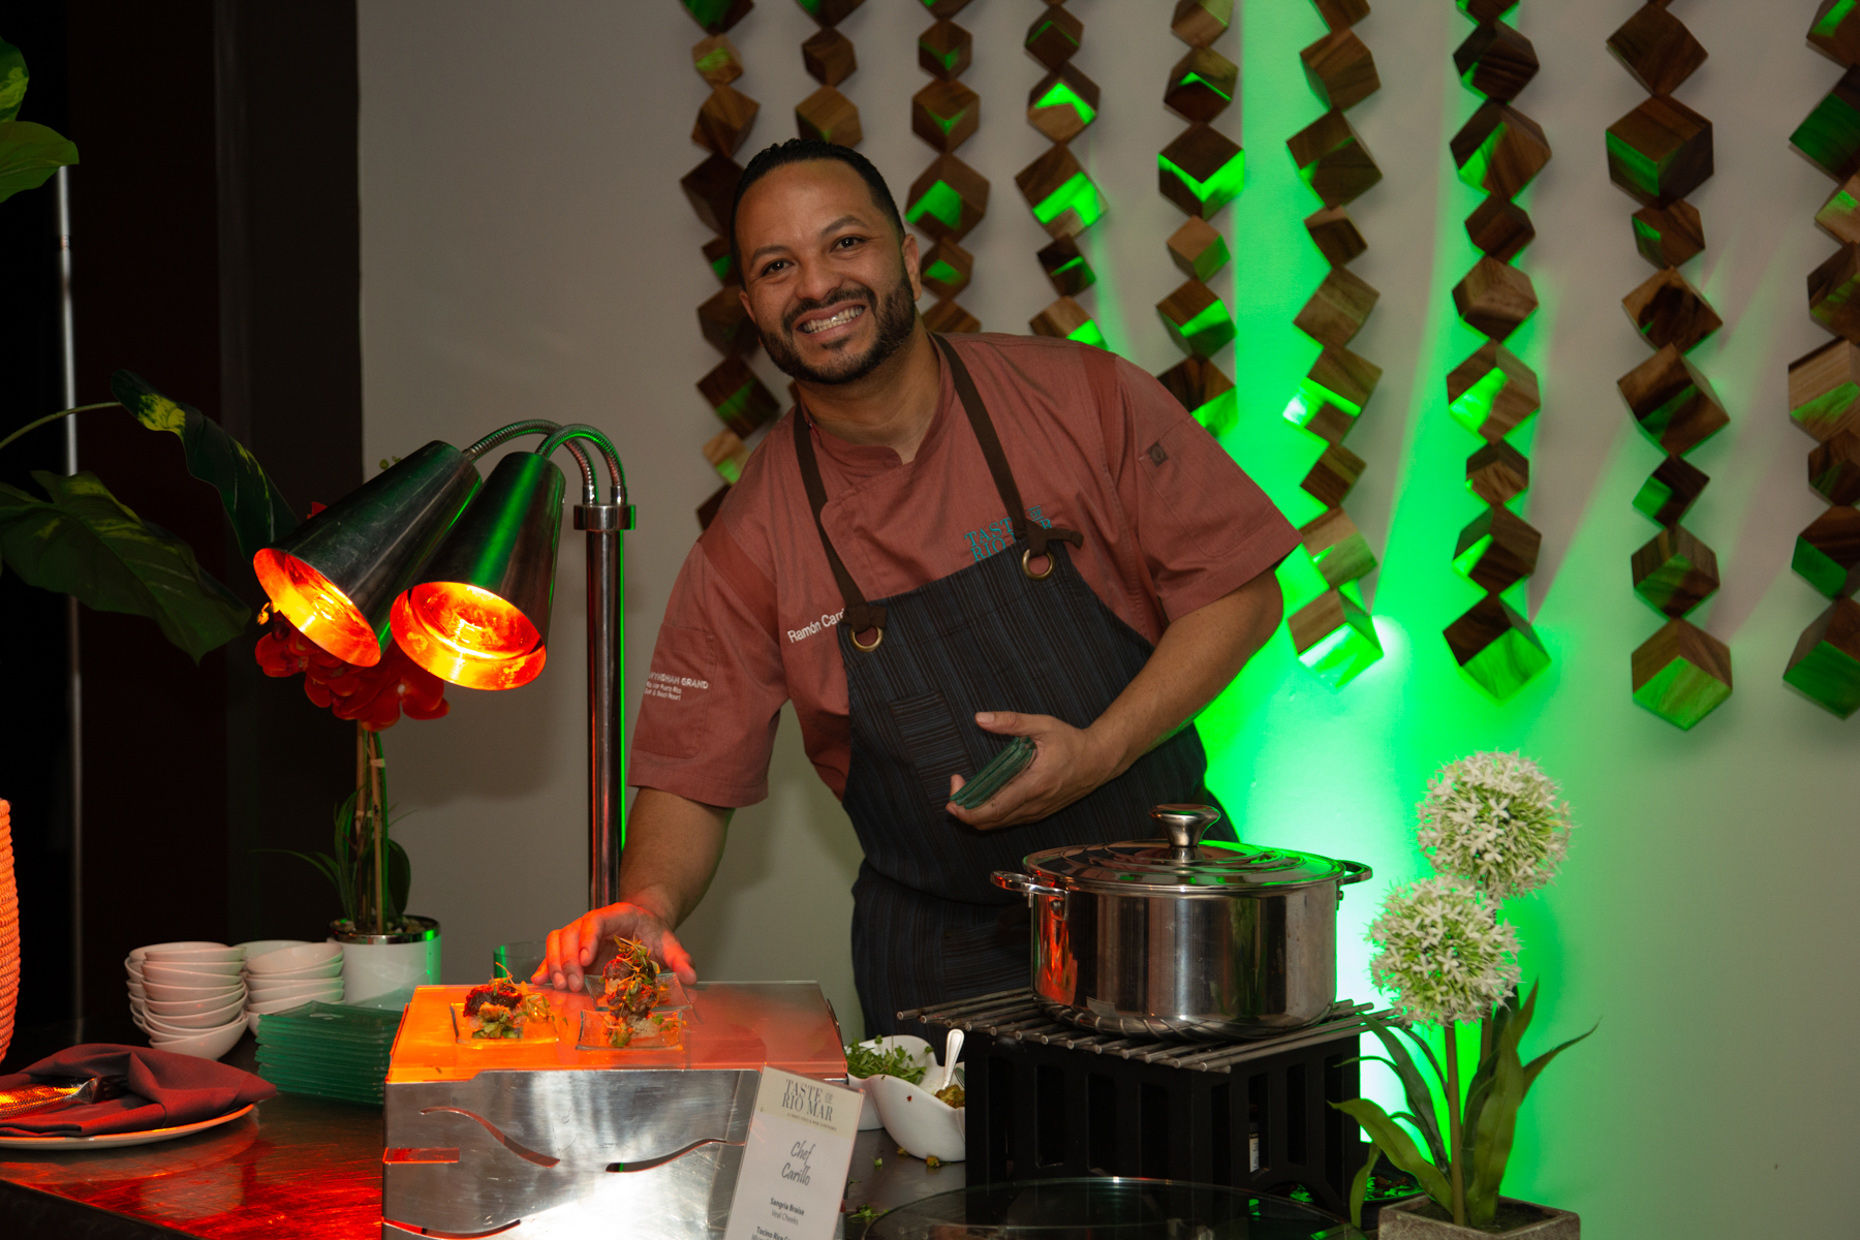 Chef-Ramon-Carrillo-A-Taste-of-Rio-Mar-The-Ultimate-Food-and-Wine-Experience-Islands-Magazine-Caryn-B-Davis